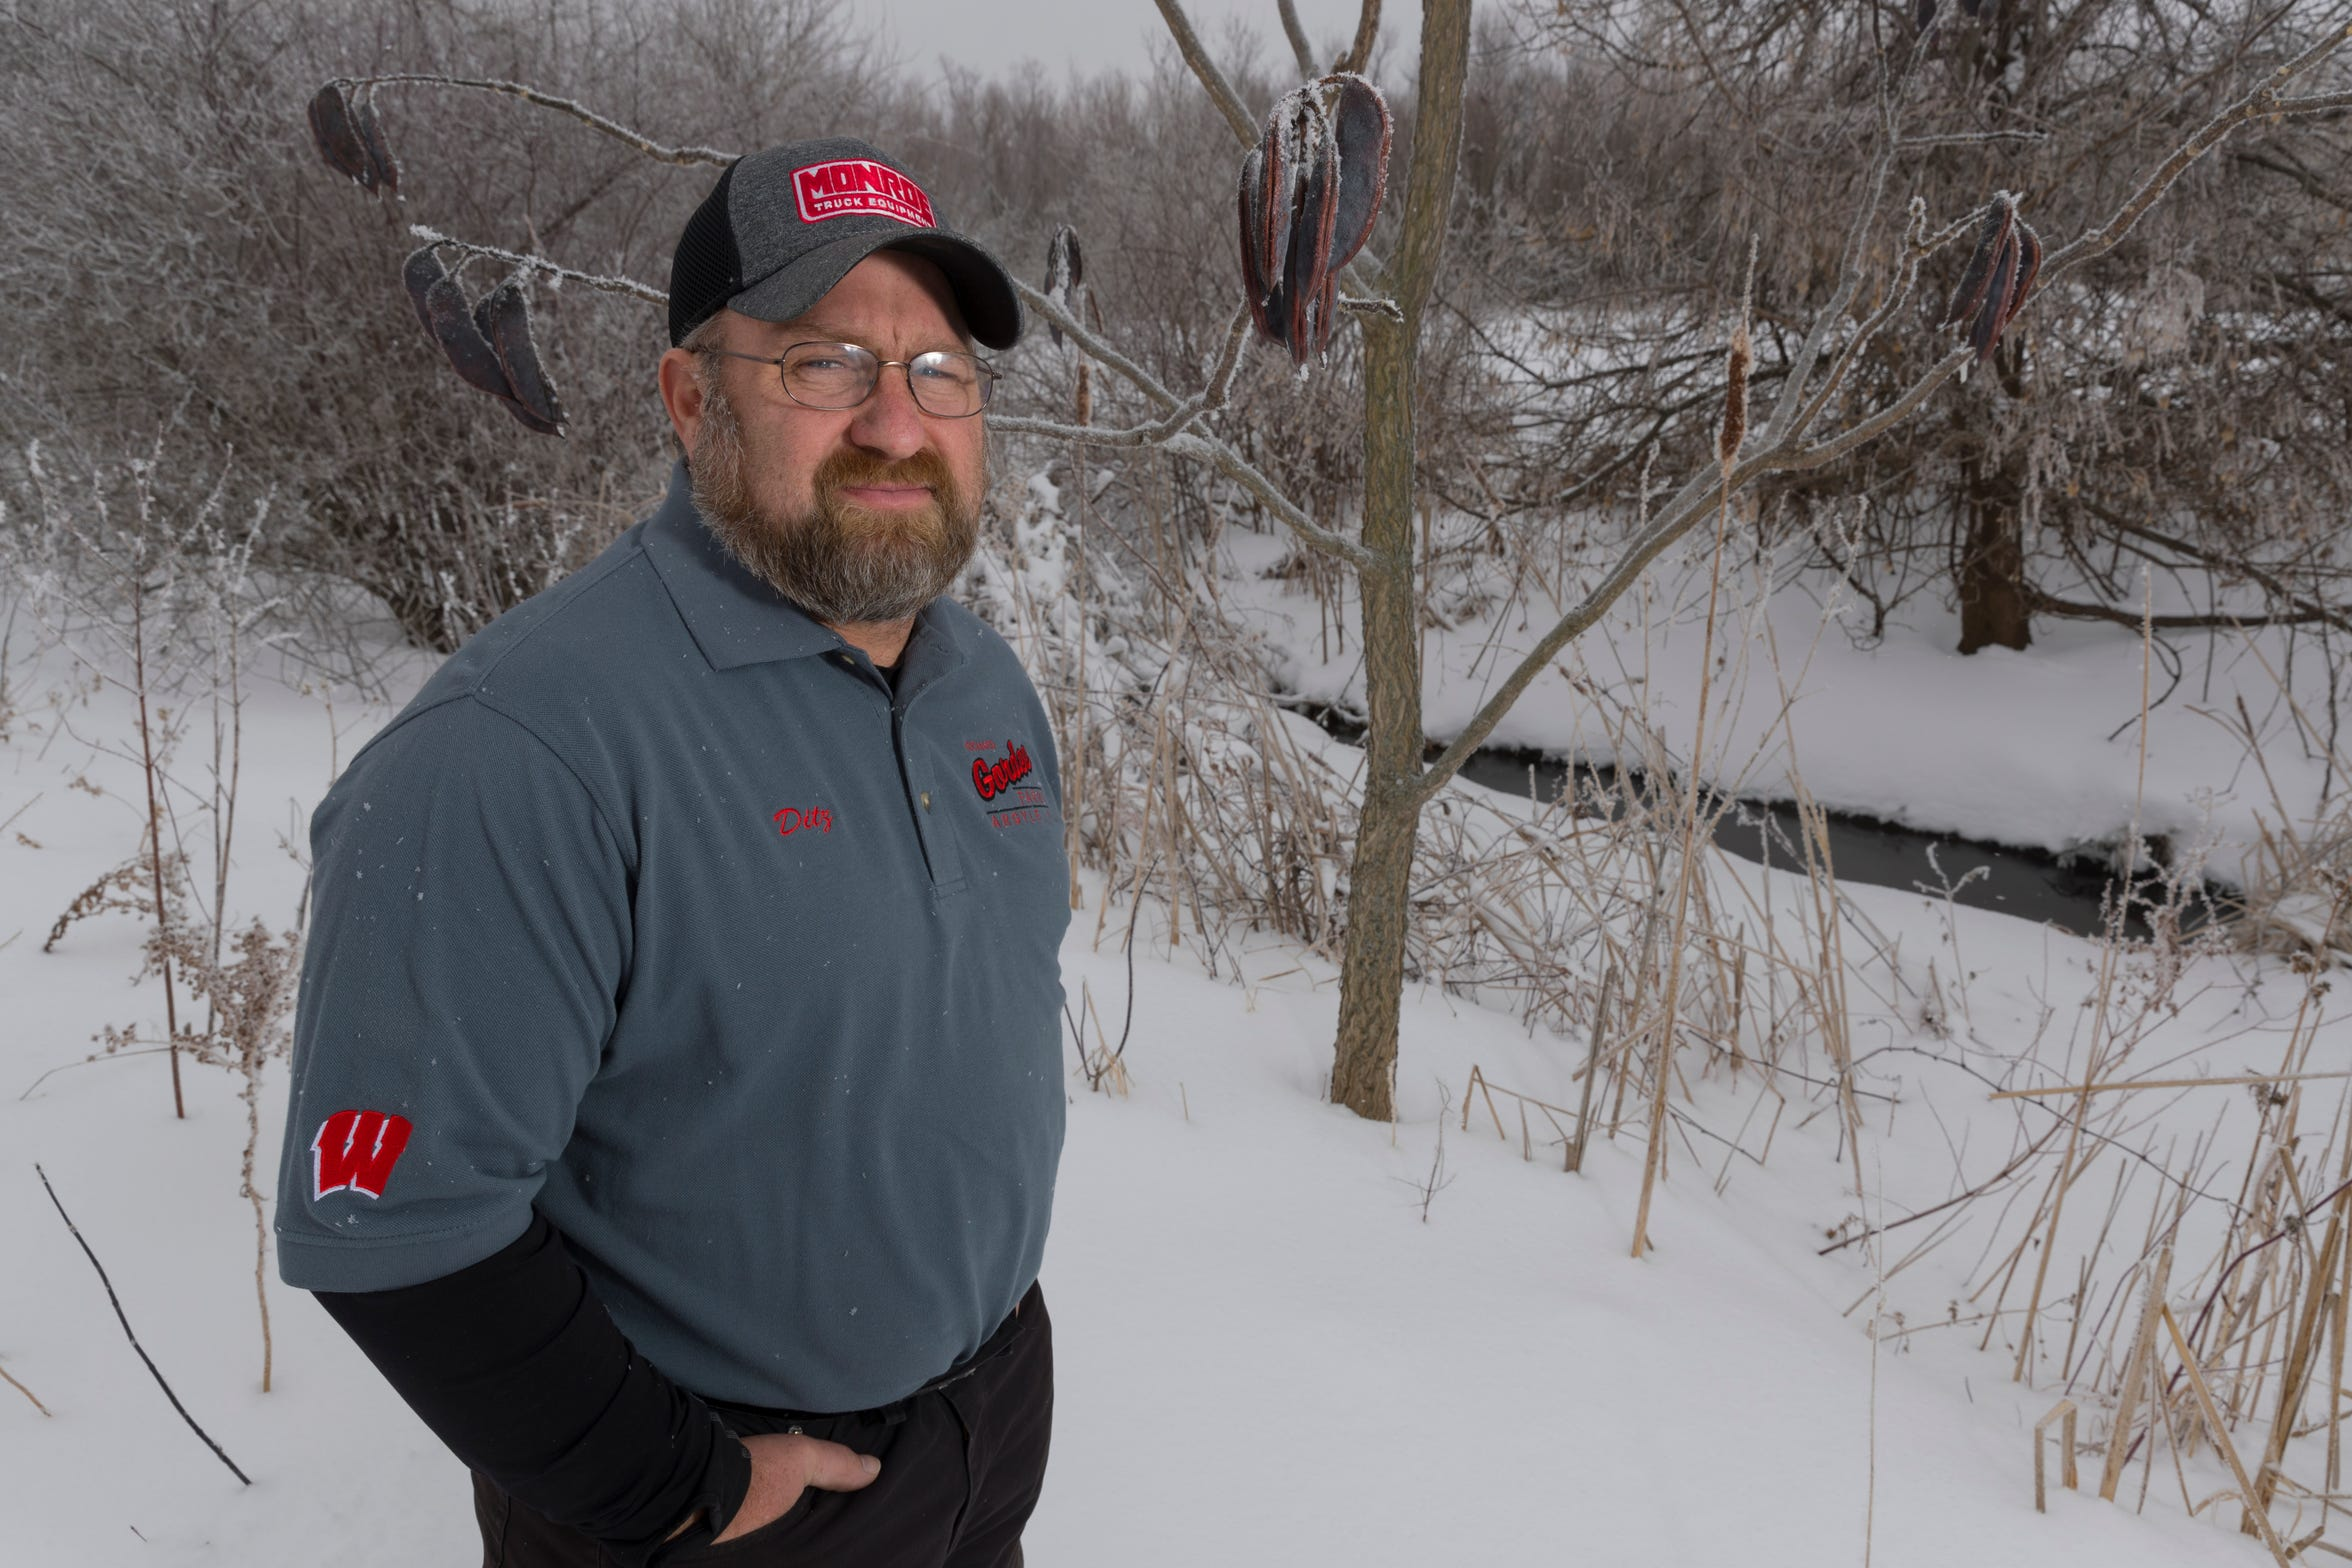 Jeff Ditzenberger has become a lifeline for other farmers who've contemplated suicide, helping them deal with the worst farm crisis in many years.